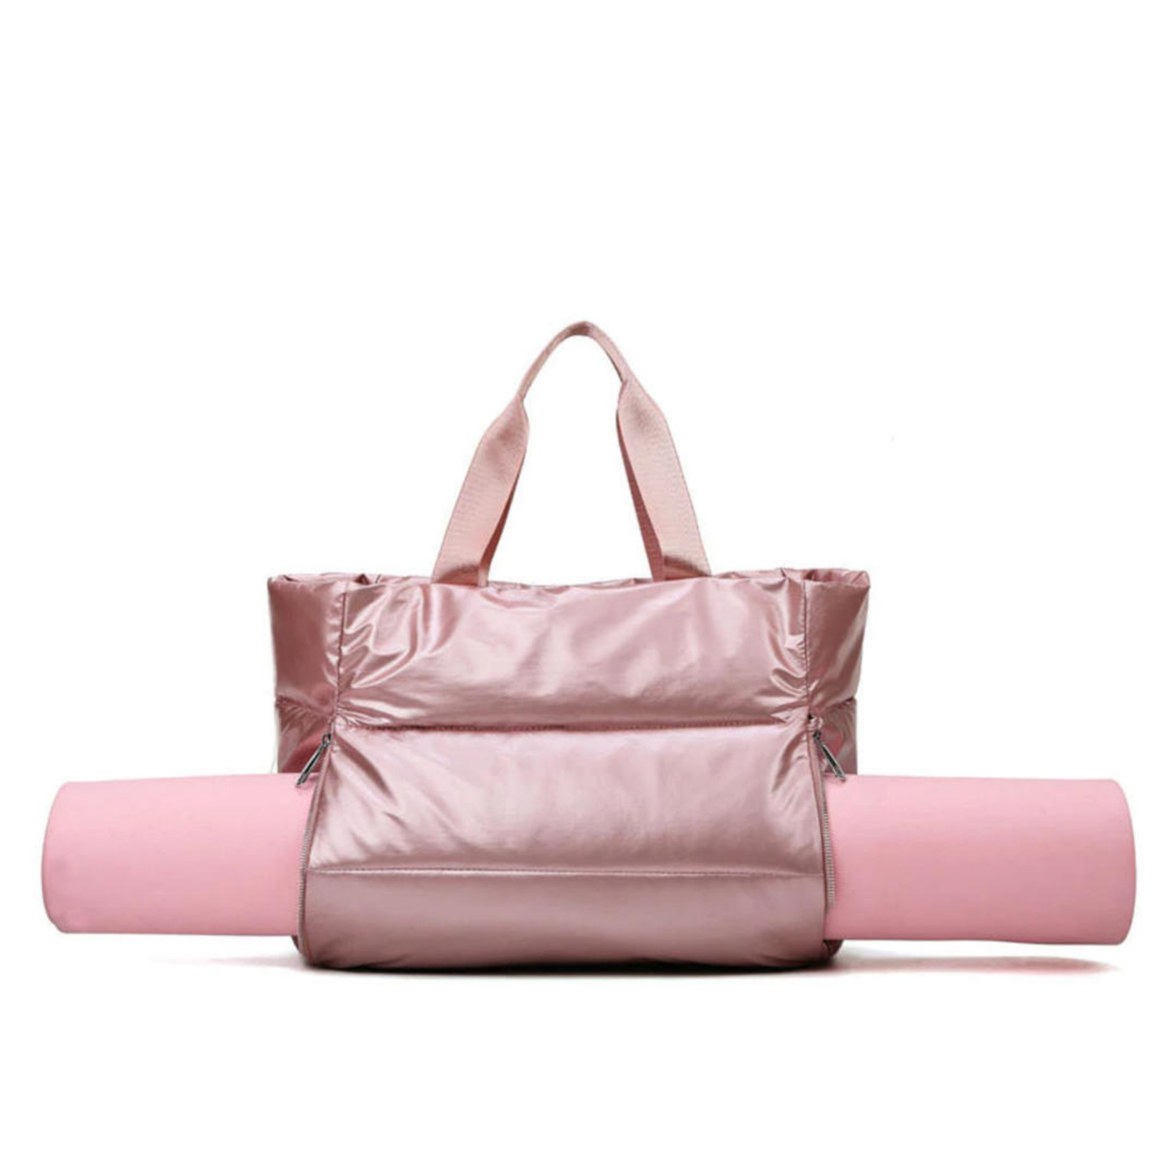 PINK HANDBAG / GYM BAG / FIT EVERYTHING TOTE